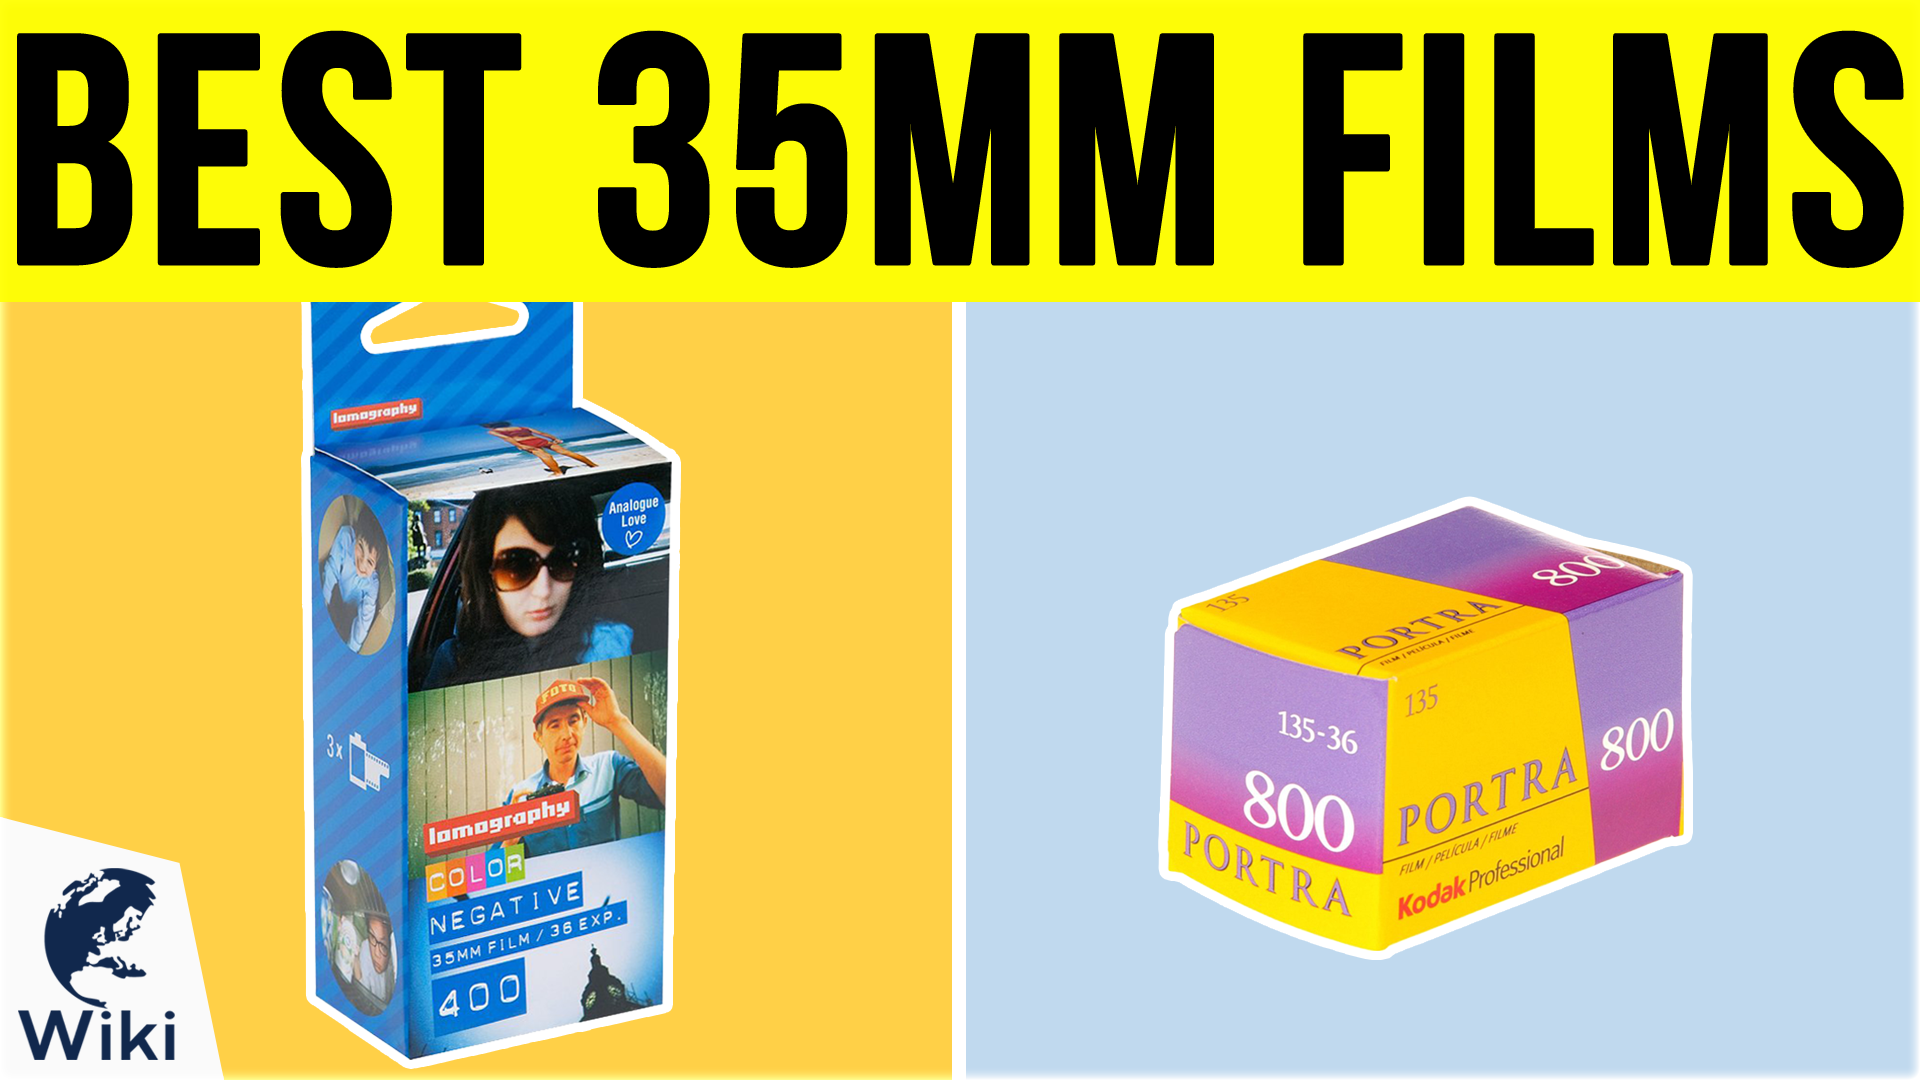 Lifeprint 20 pack of film for Lifeprint Augmented Reality Photo AND Video Printer 3x4.5 Zero Ink sticky backed film